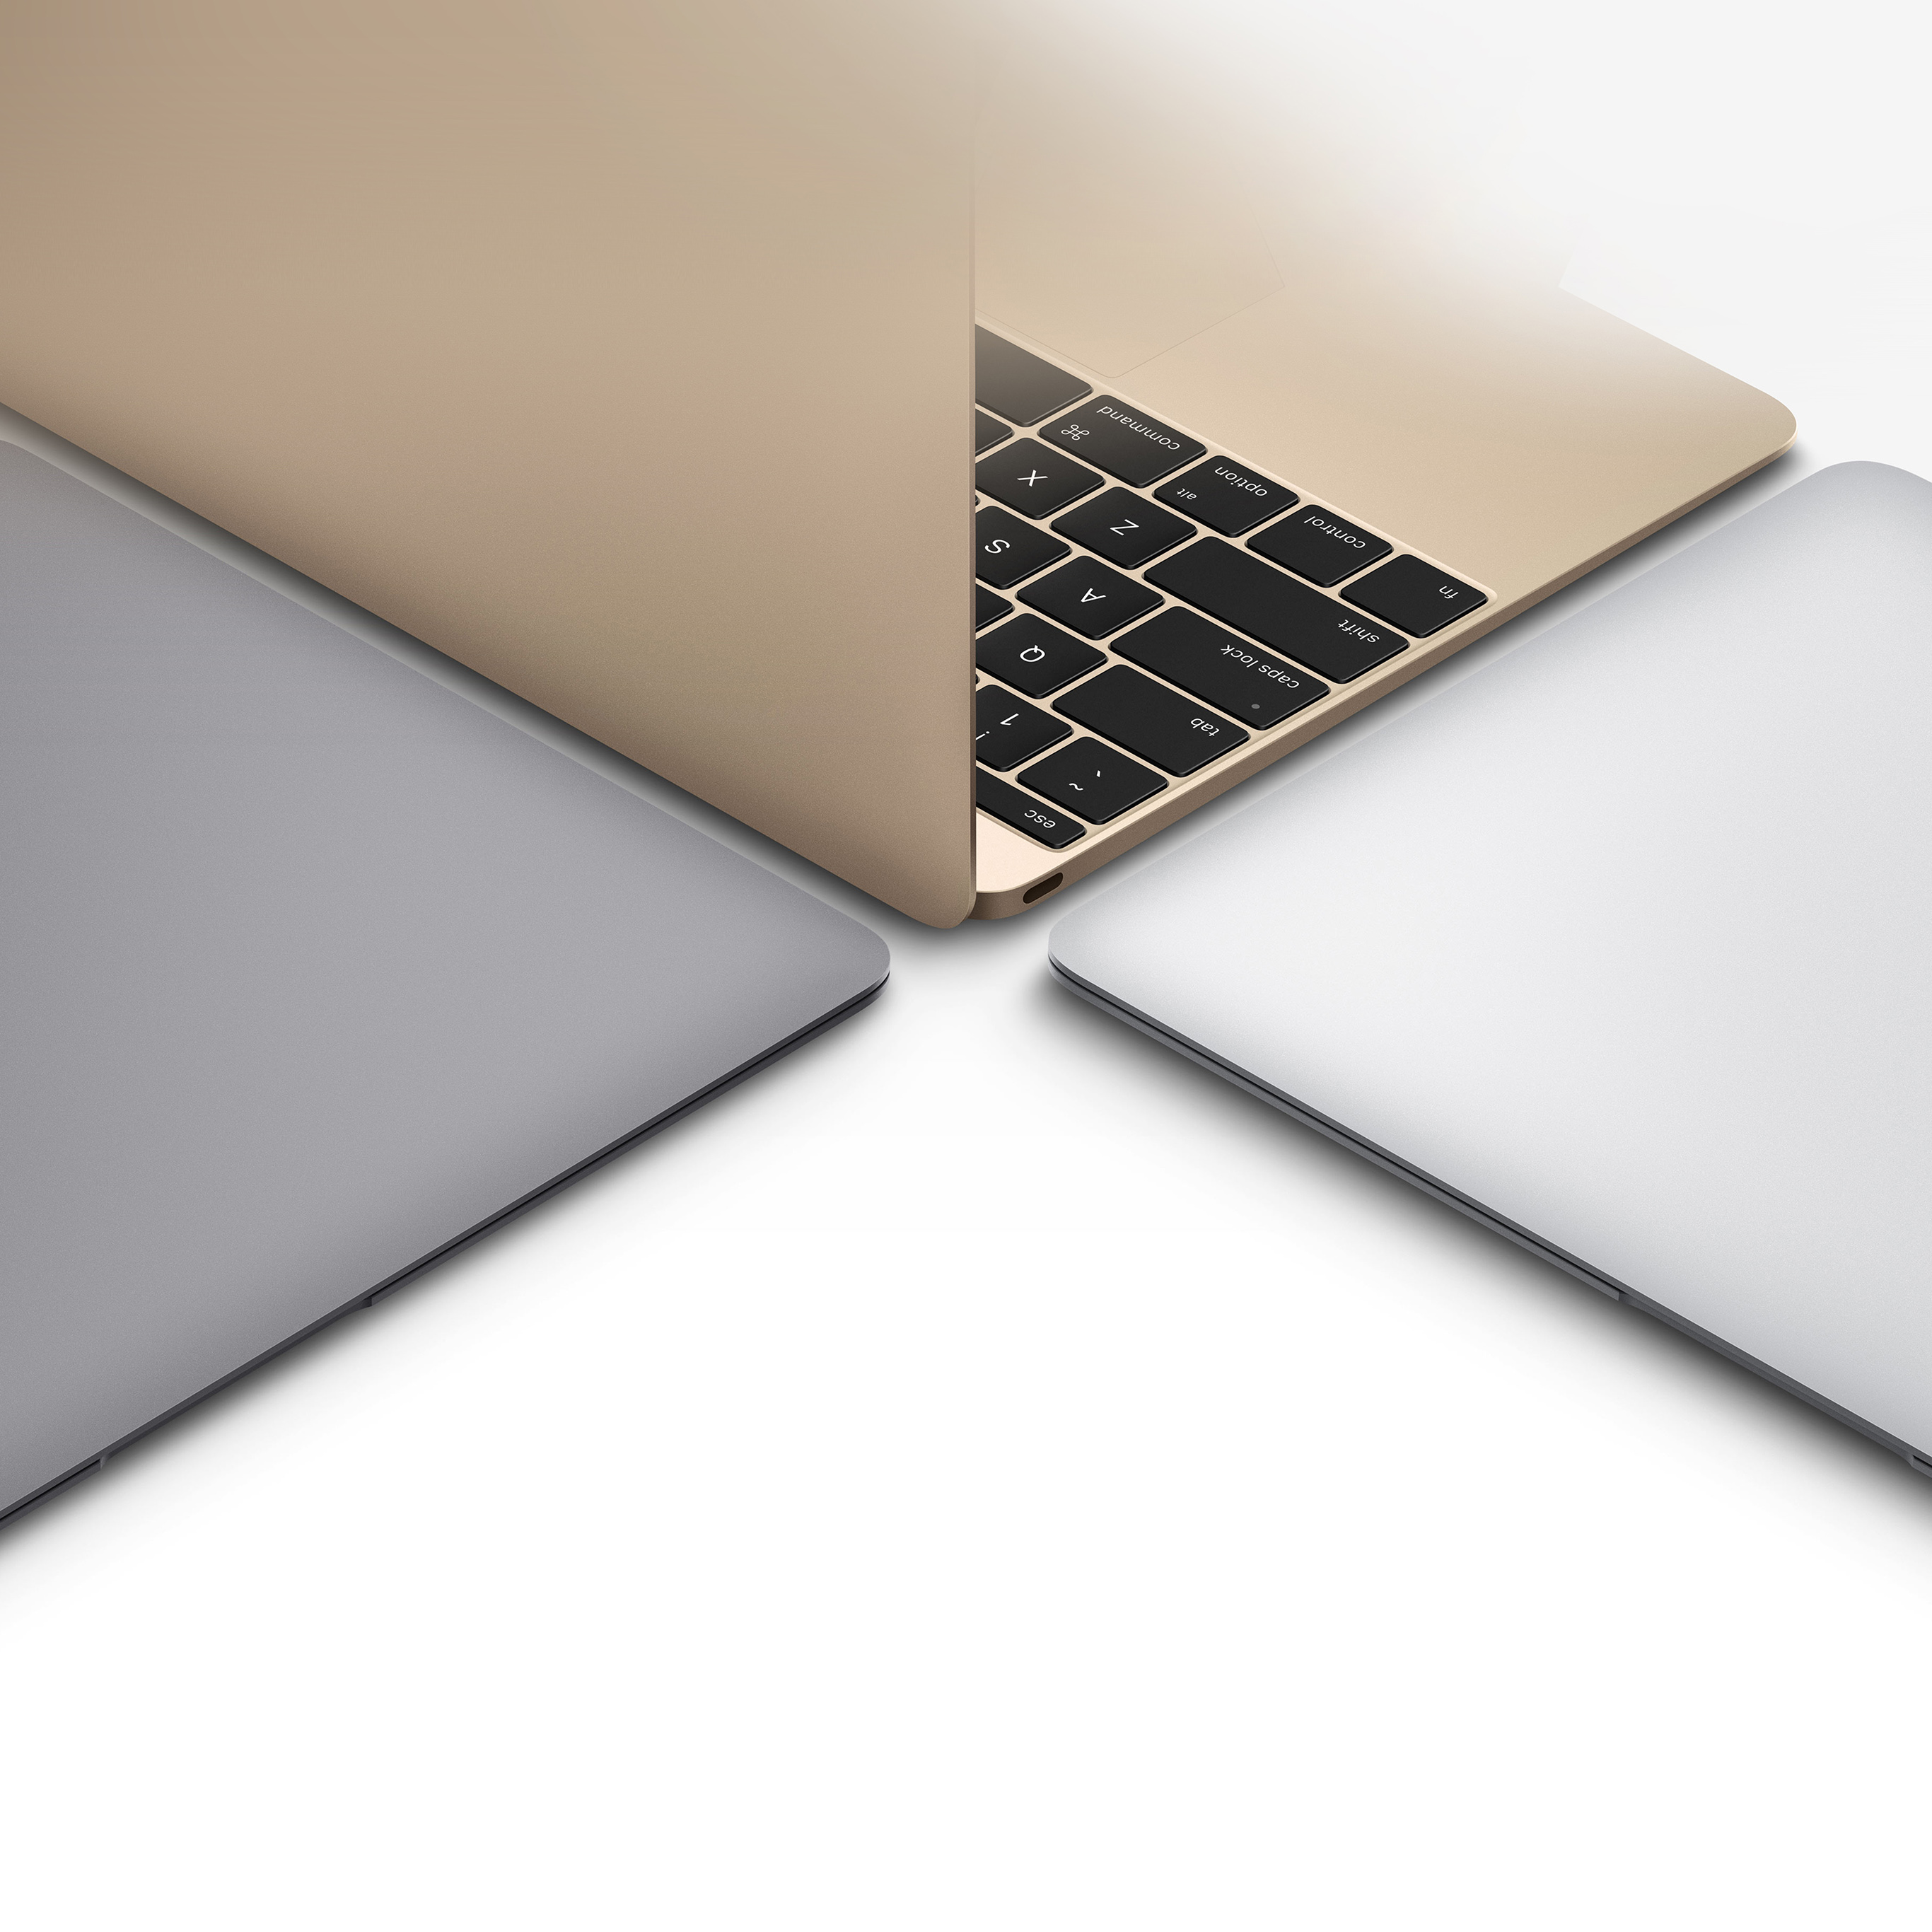 apple-macbook-gold-silver-slate-gray-art-40-wallpaper